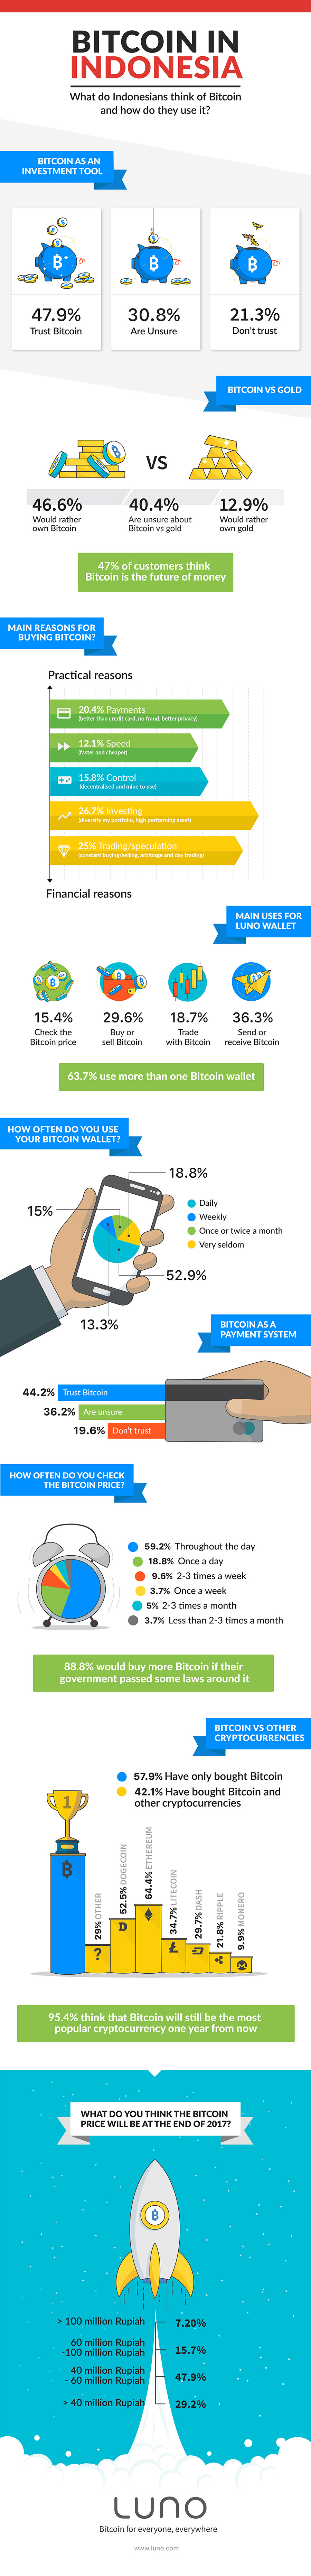 How-Indonesians-use-Bitcoin_infographic